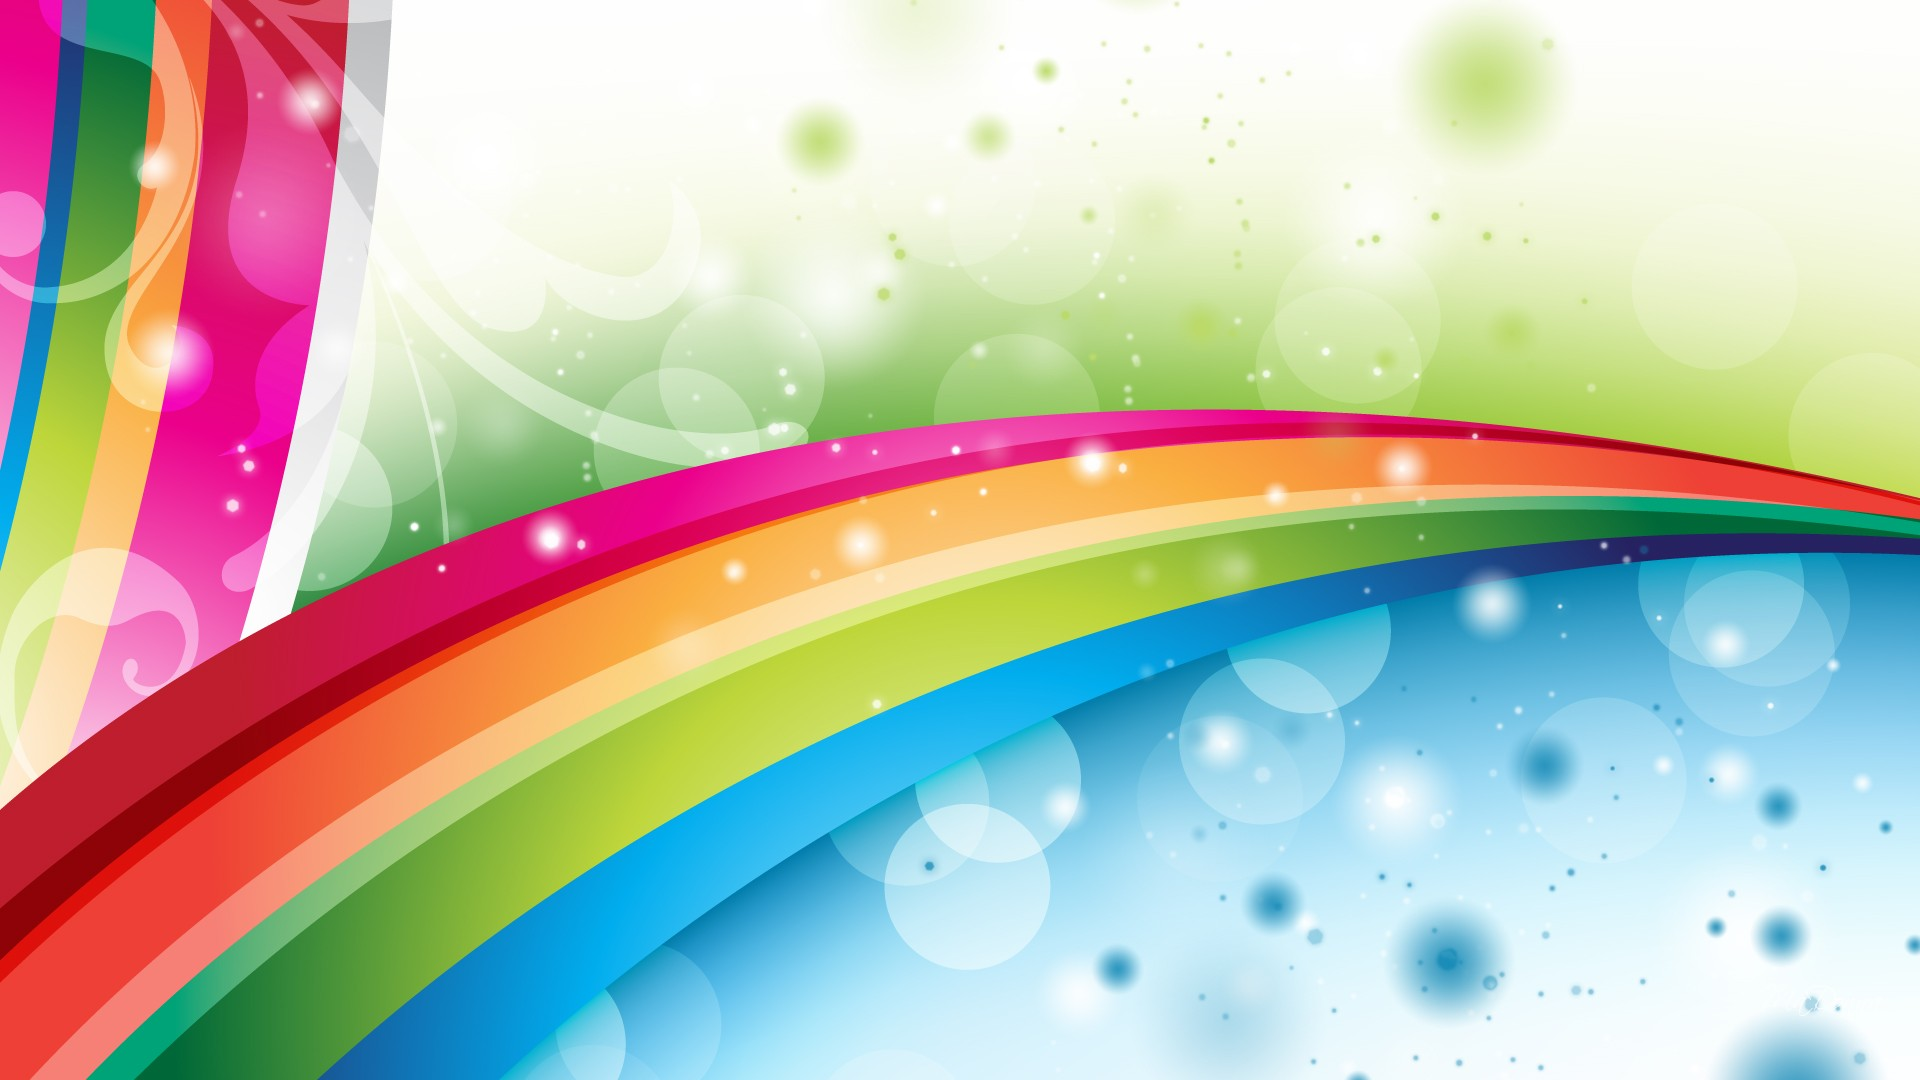 rainbow illustration wallpaper 1920x1080 - photo #21